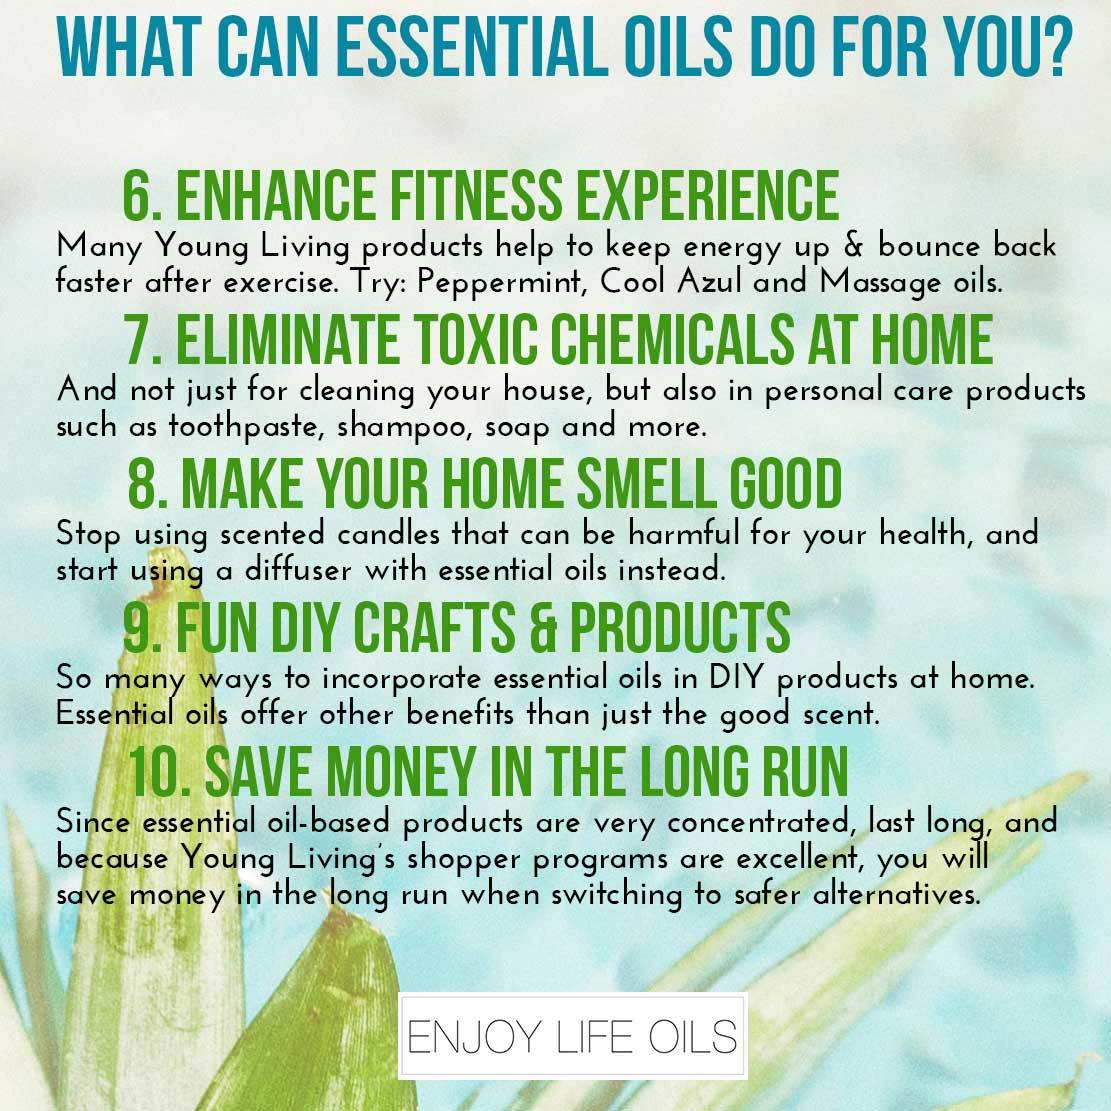 #398E11 Sign Up With Young Living Essential Oils Skimbaco  Brand New 7211 What Does Essential Oils Do images with 1111x1111 px on helpvideos.info - Air Conditioners, Air Coolers and more